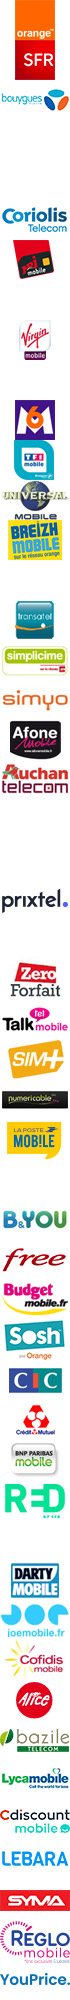 forfait Joe Mobile Personnalisable - 50 Mo illimit� Sans engagement